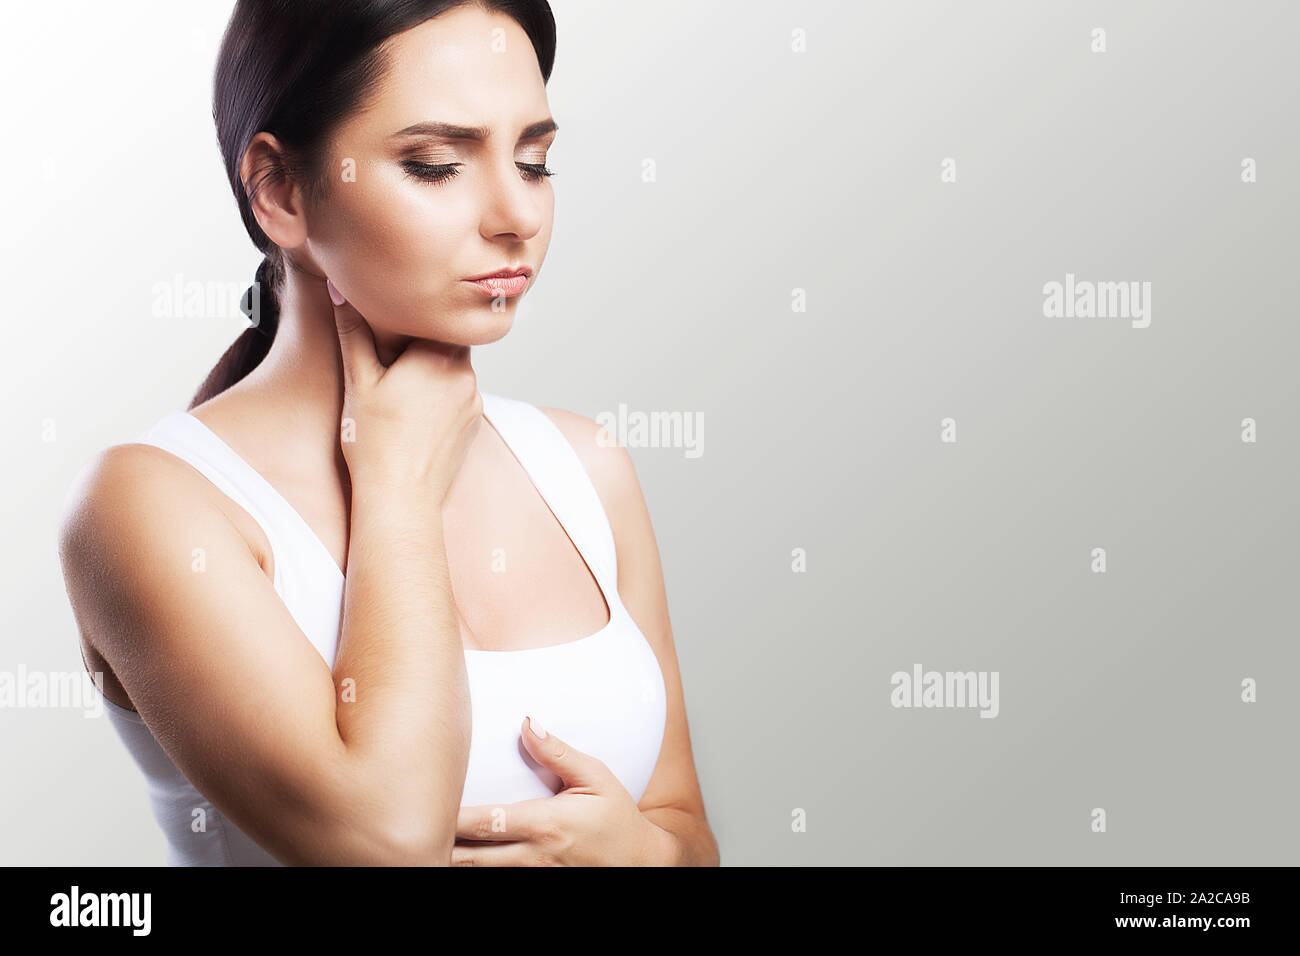 Sore throat. Sick woman, flu Young beautiful woman with sore throat. Feeling painful in the throat. The concept of health. On a gray background. Stock Photo